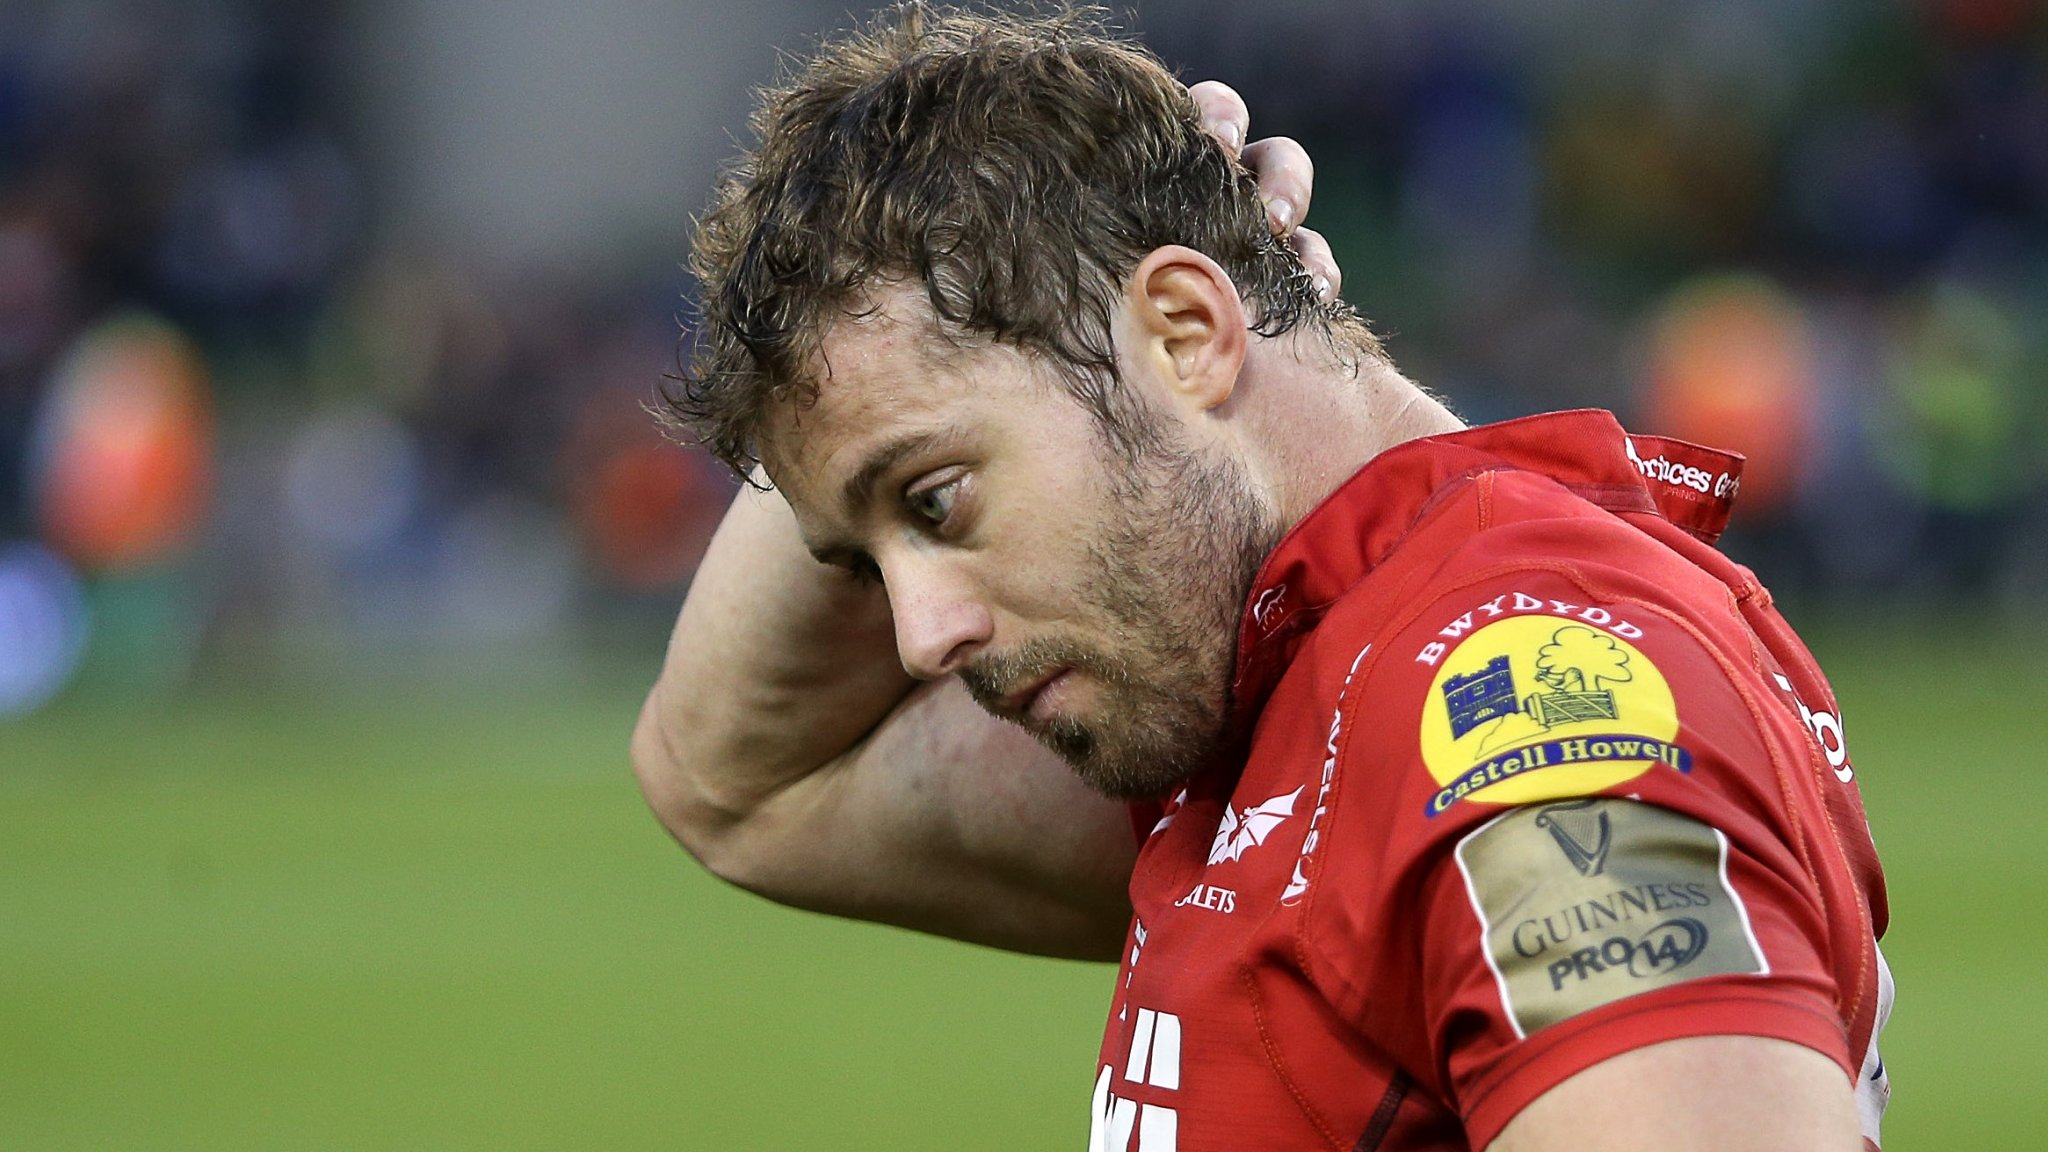 Leigh Halfpenny: Long lay-off reflects better care, says Wayne Pivac